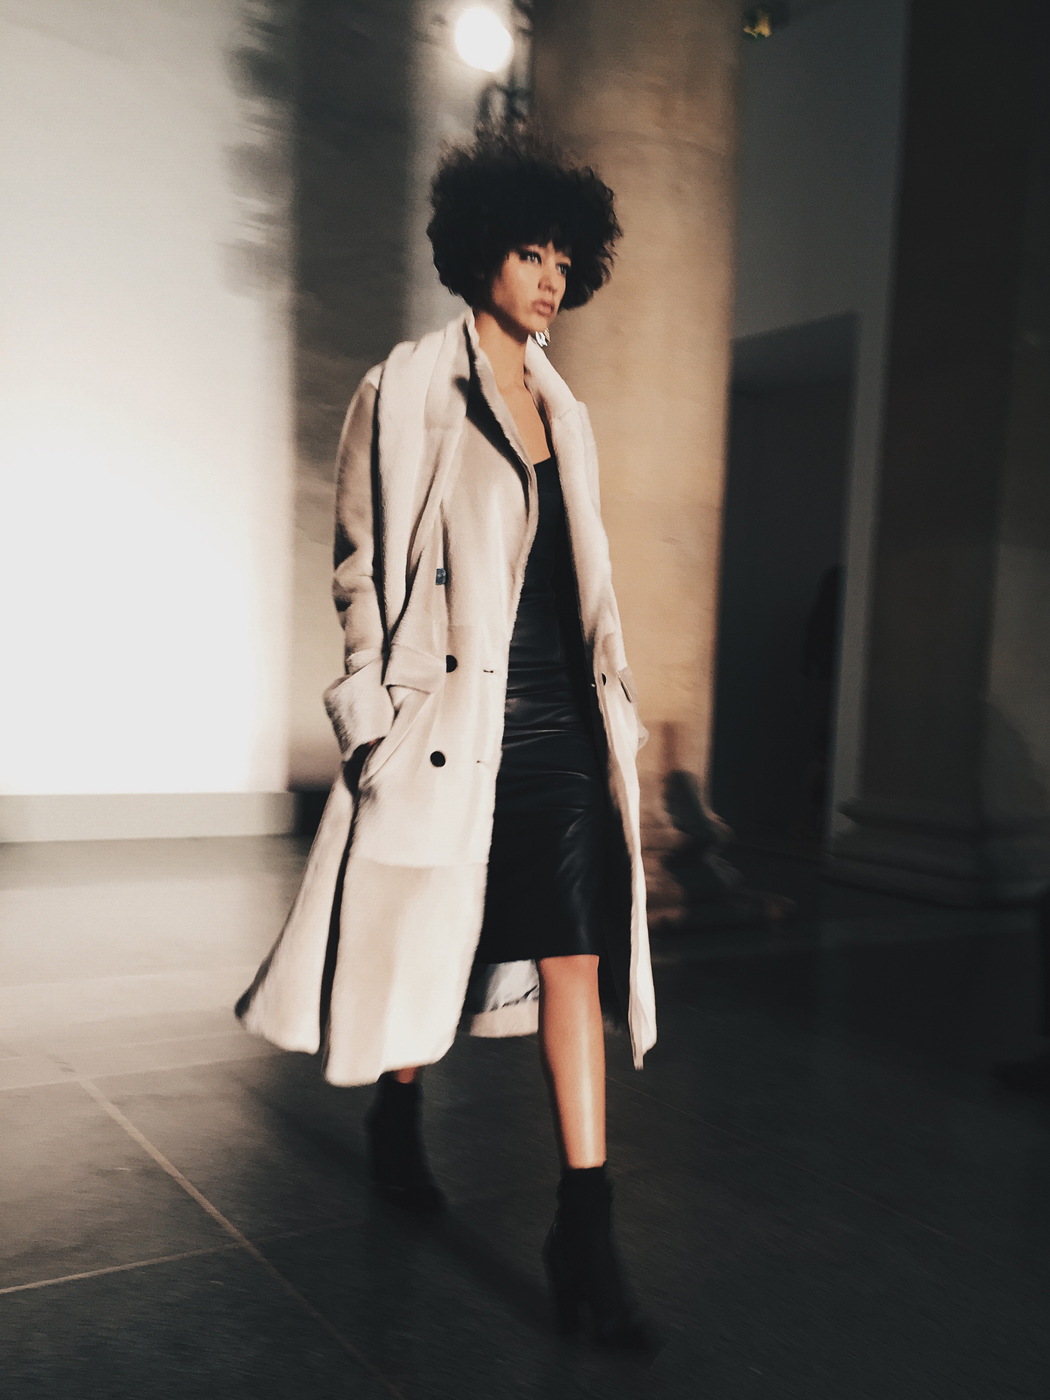 Topshop_Unique-Khaki_Trousers-VNeck_Sweater-Suede_Jacket-Bow_Shoes-Outfit-LFW-London_Fashion_Week_Fall_2016-Street_Style-64